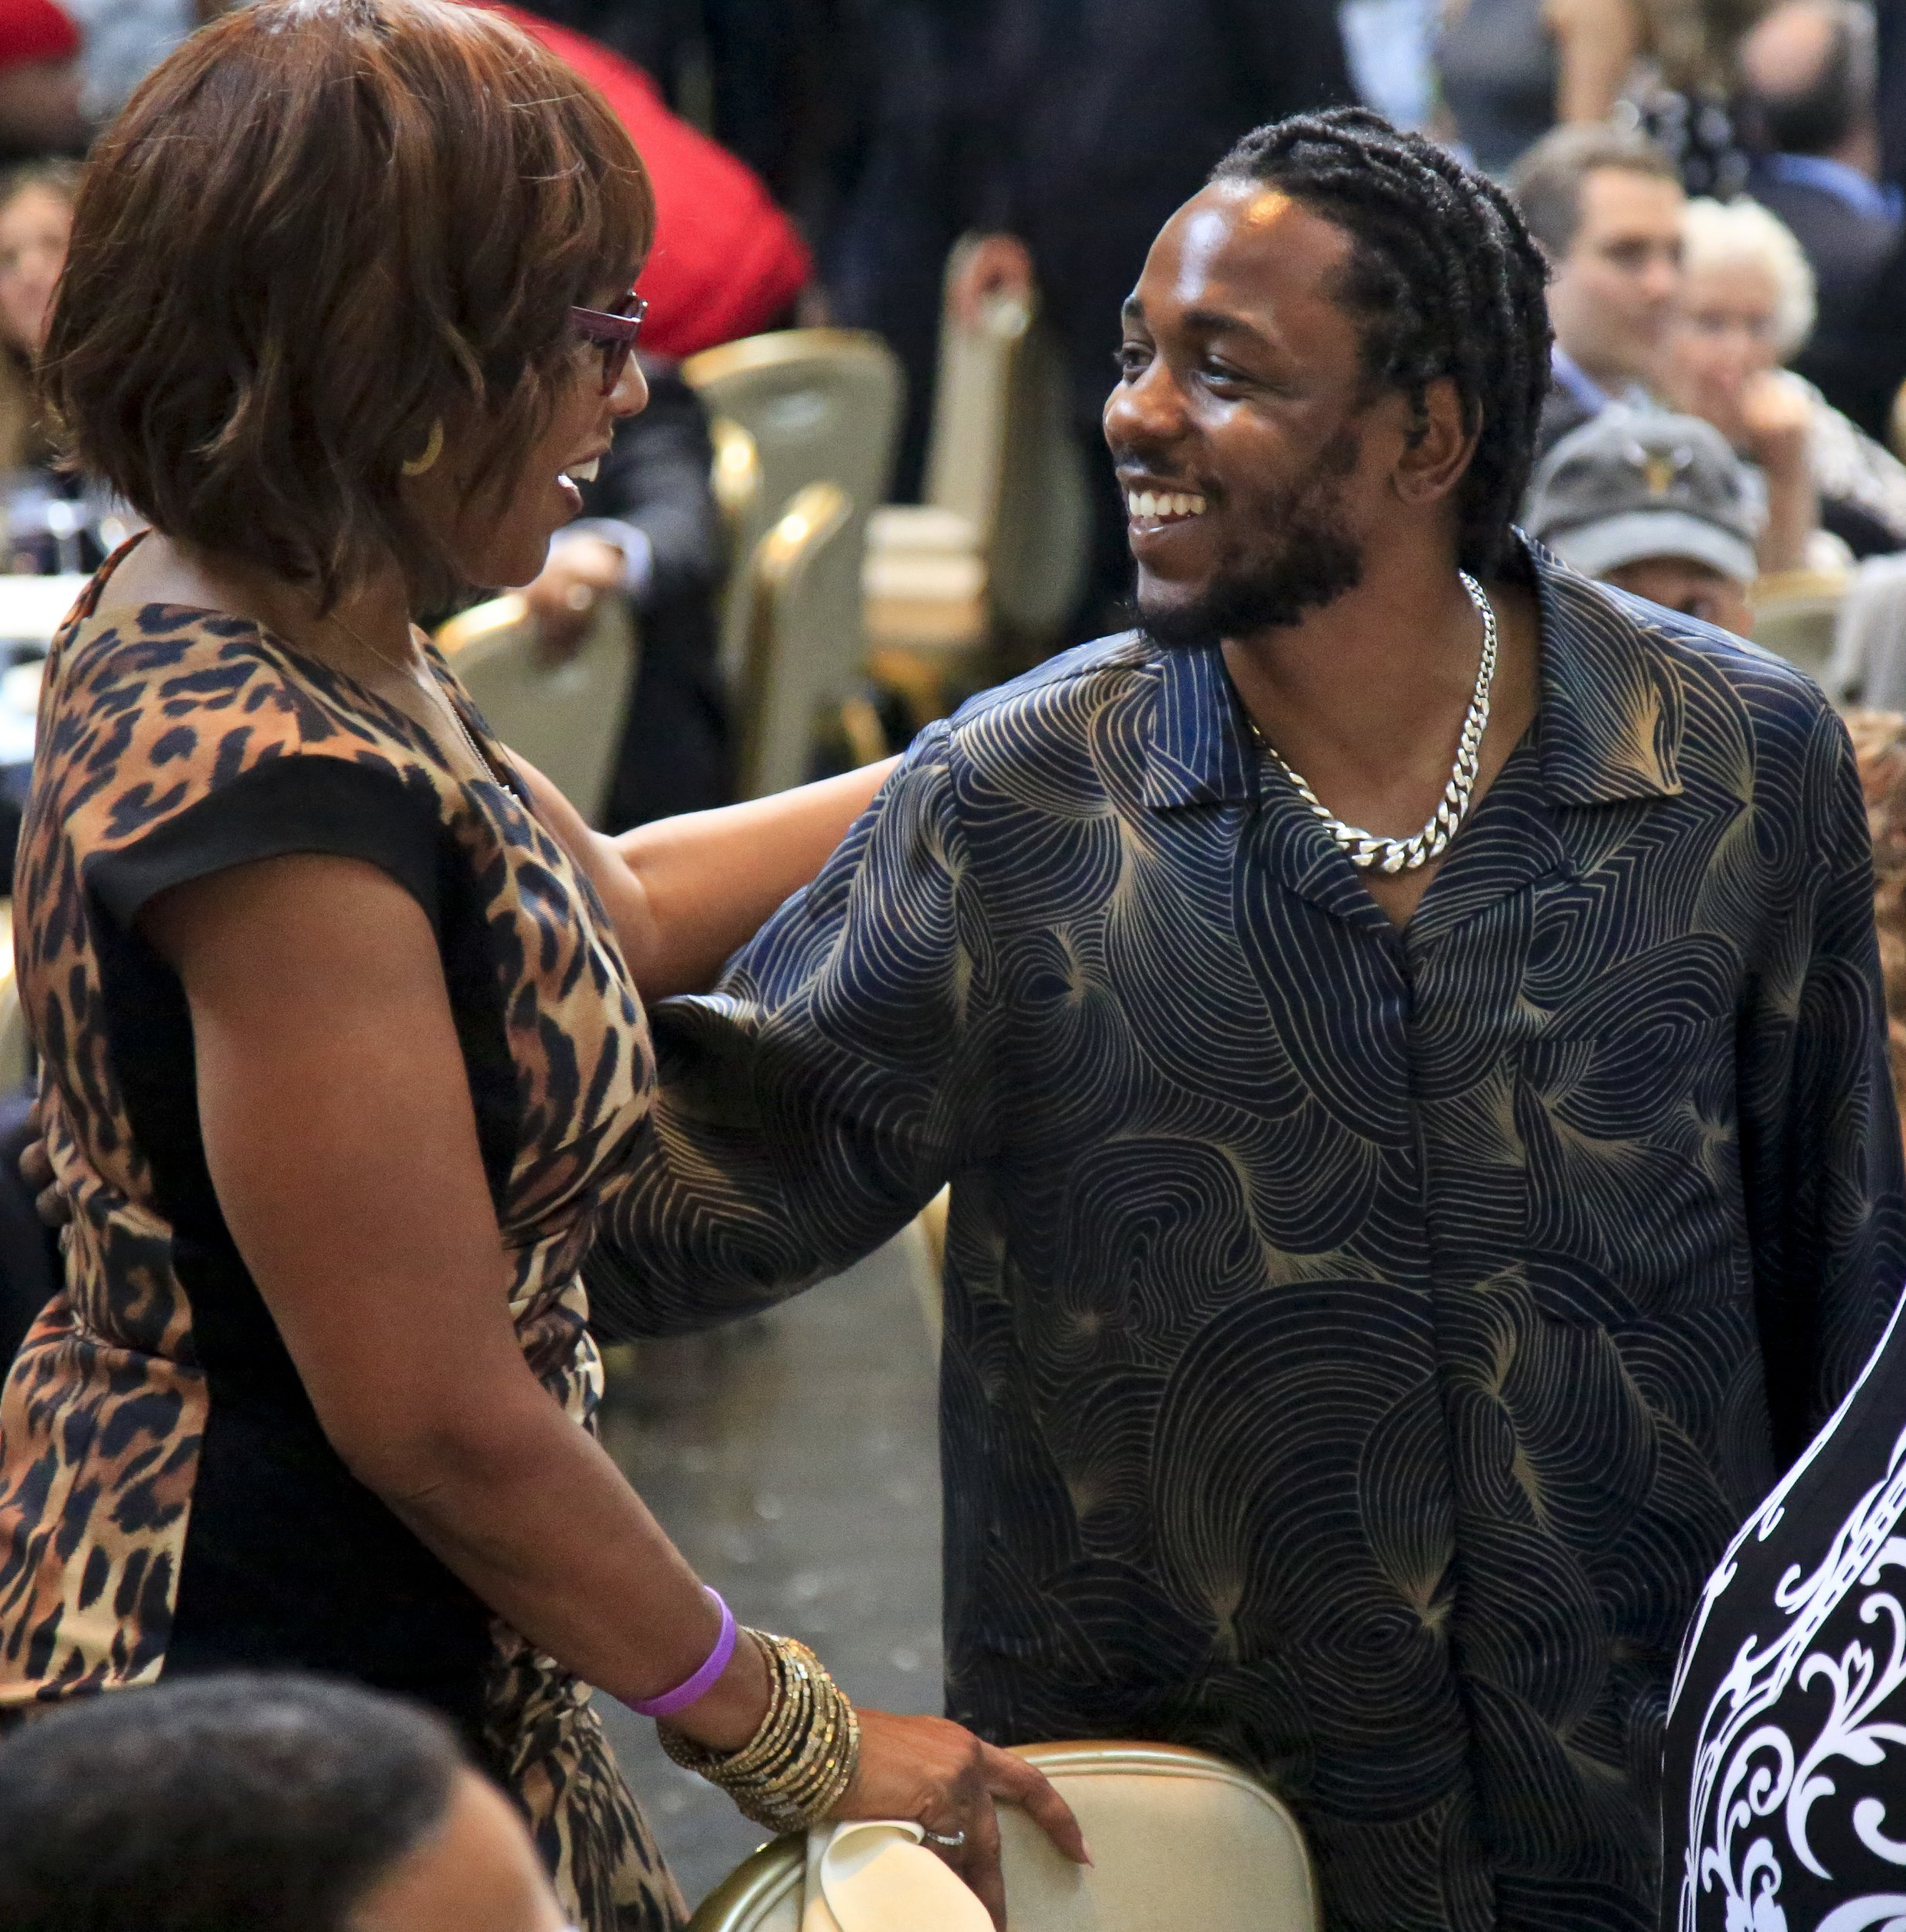 Kendrick Lamar looks pleased as punch as he makes history receiving Pulitzer Prize for Damn